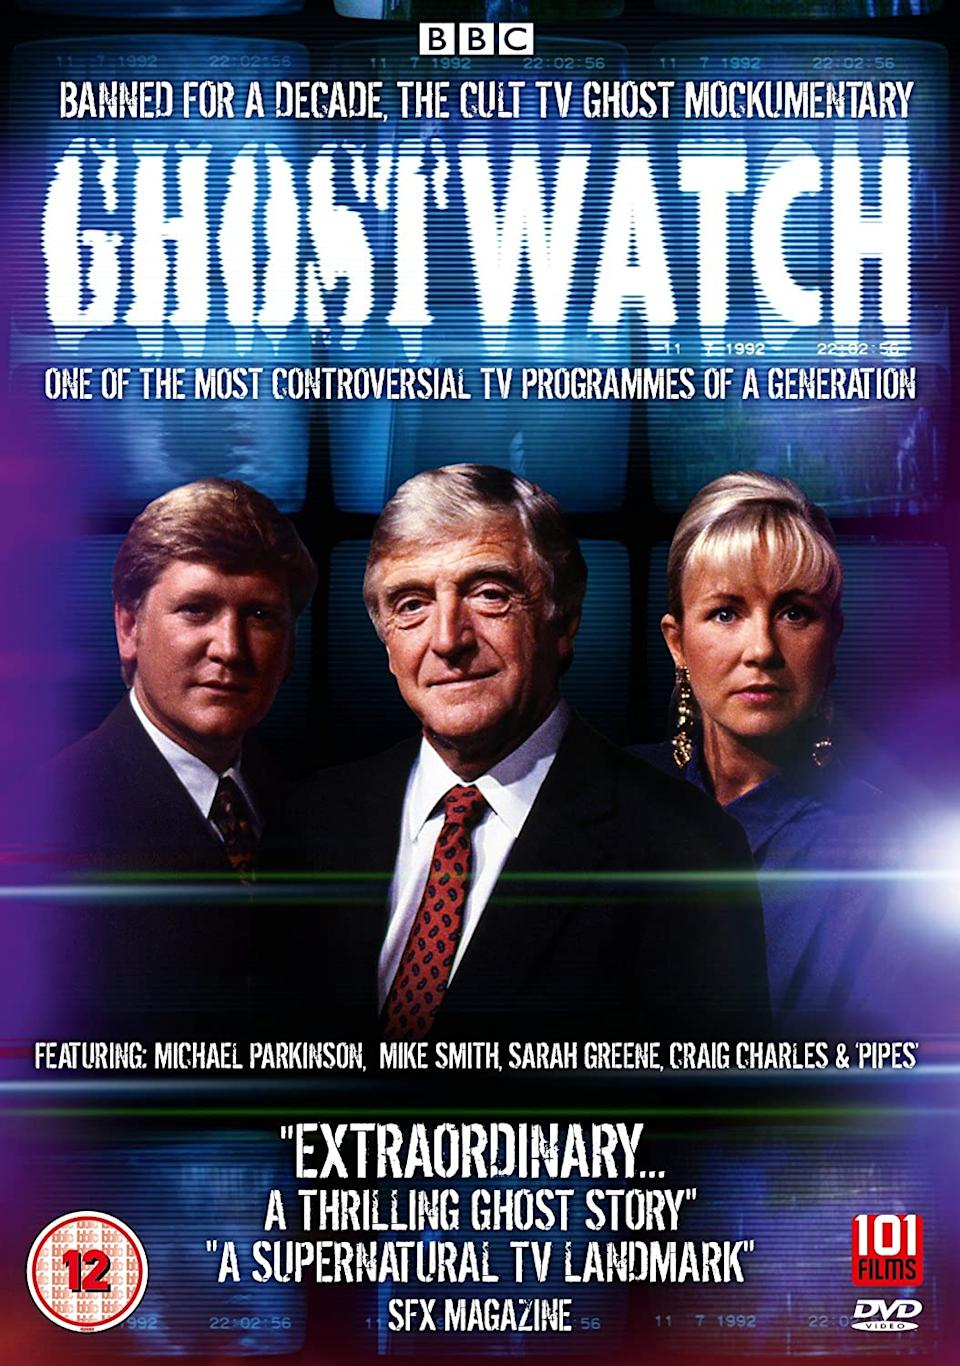 The DVD cover for Ghostwatch. (101 Films)